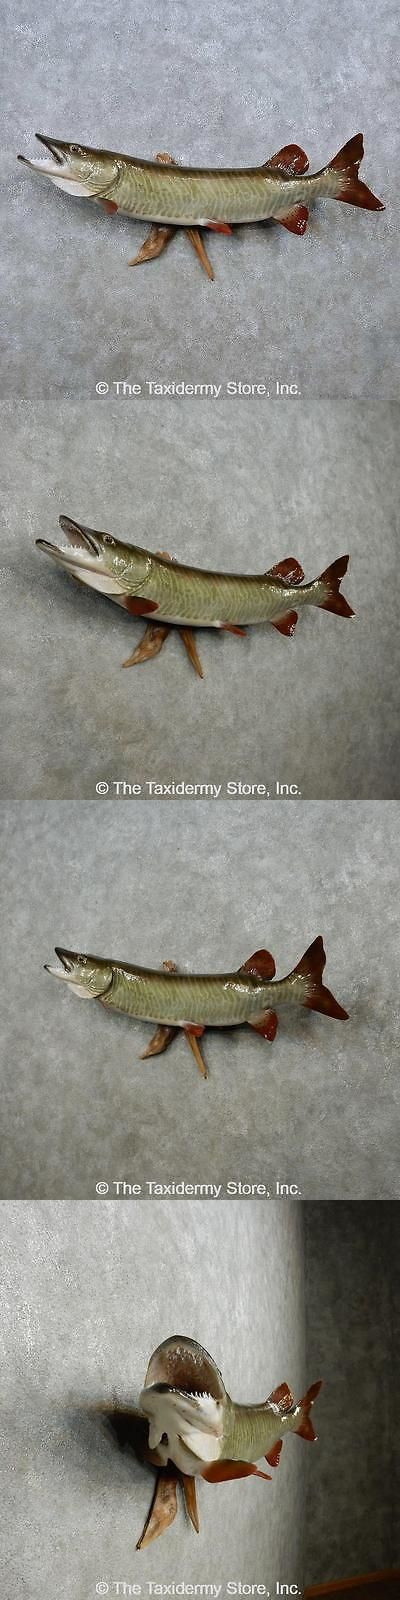 Fish 71127: #14465 P+ | 46 Muskie Reproduction Taxidermy Fish Mount For Sale BUY IT NOW ONLY: $1050.0